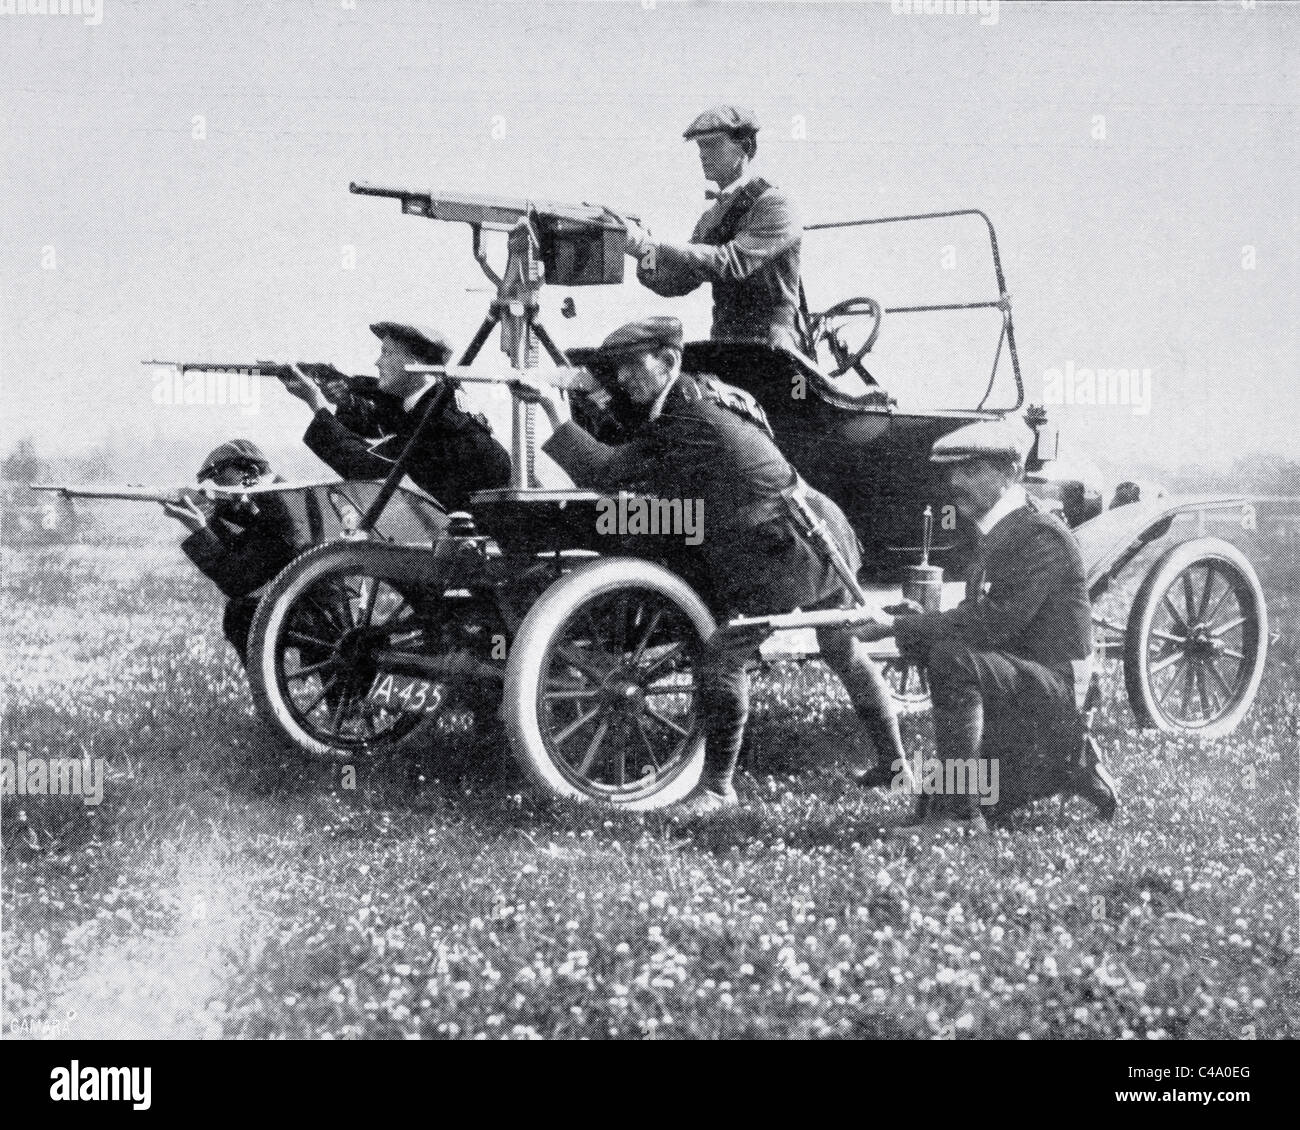 Members of the Ulster Volunteer Force with mobile machine gun, photographed in 1914 during the Home Rule Crisis. - Stock Image